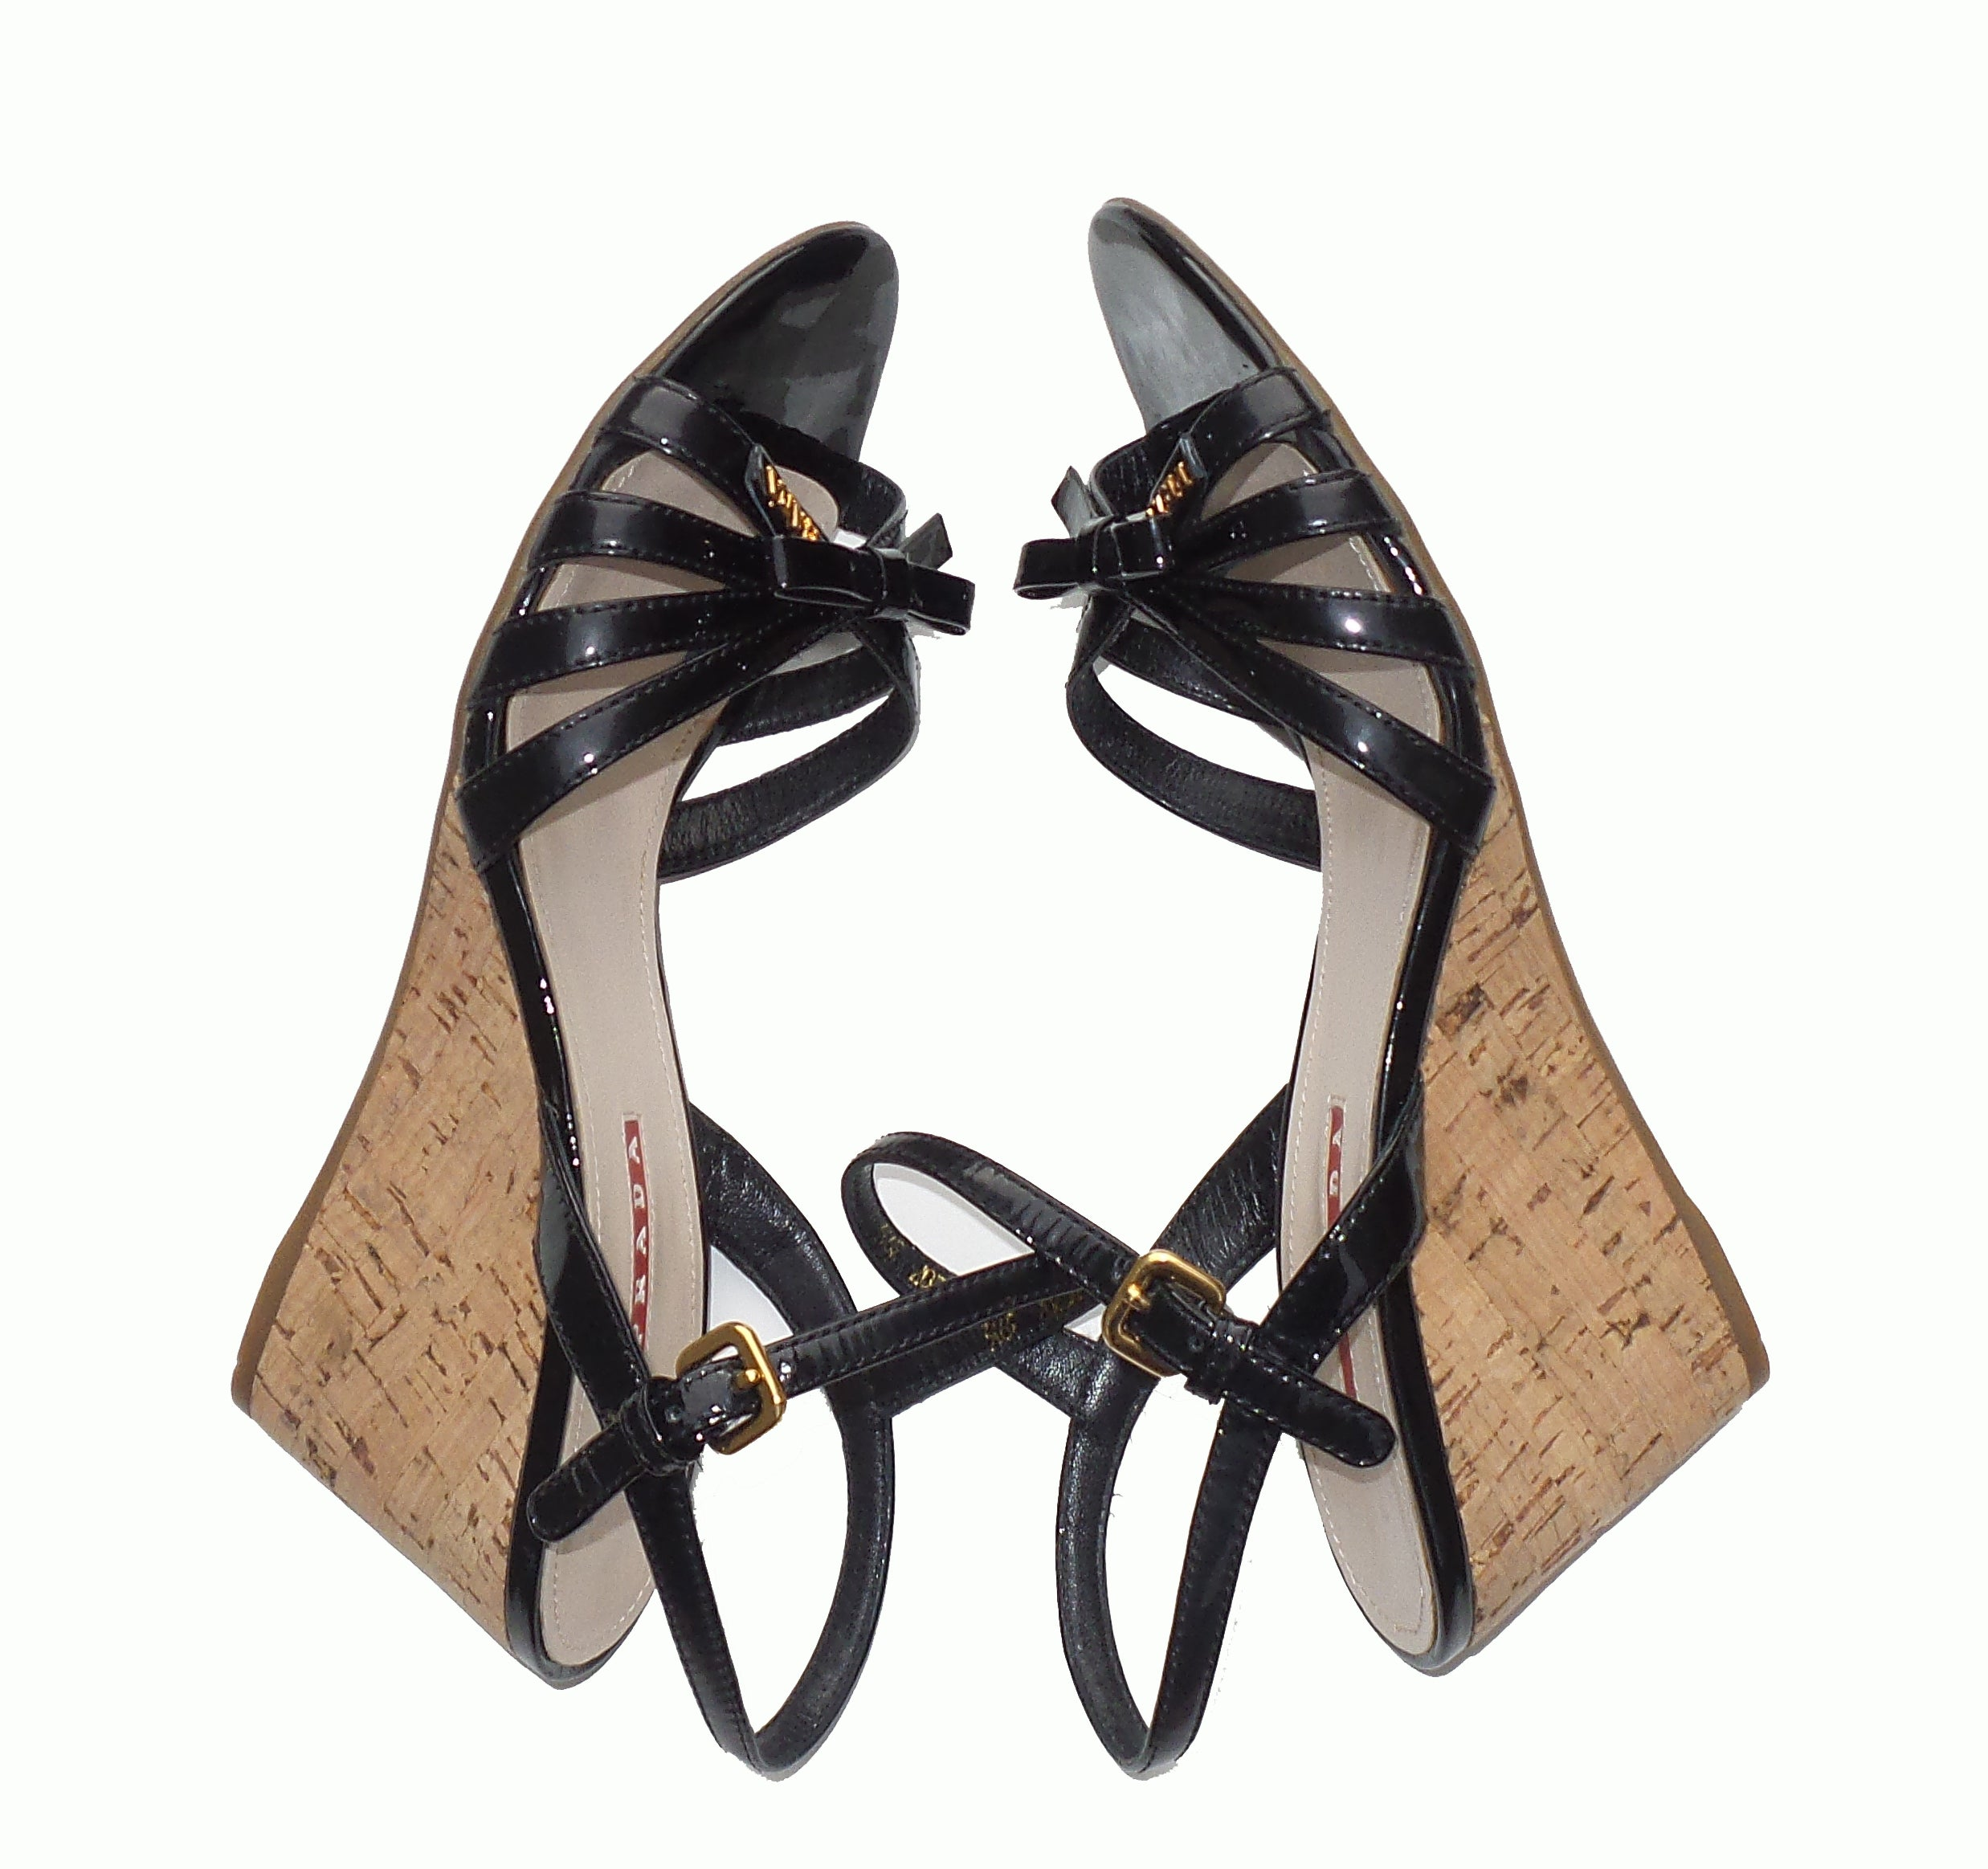 'Sold' PRADA Sport Black Patent Leather Strappy Bow Cork Wedge Heel Sandals 39.5